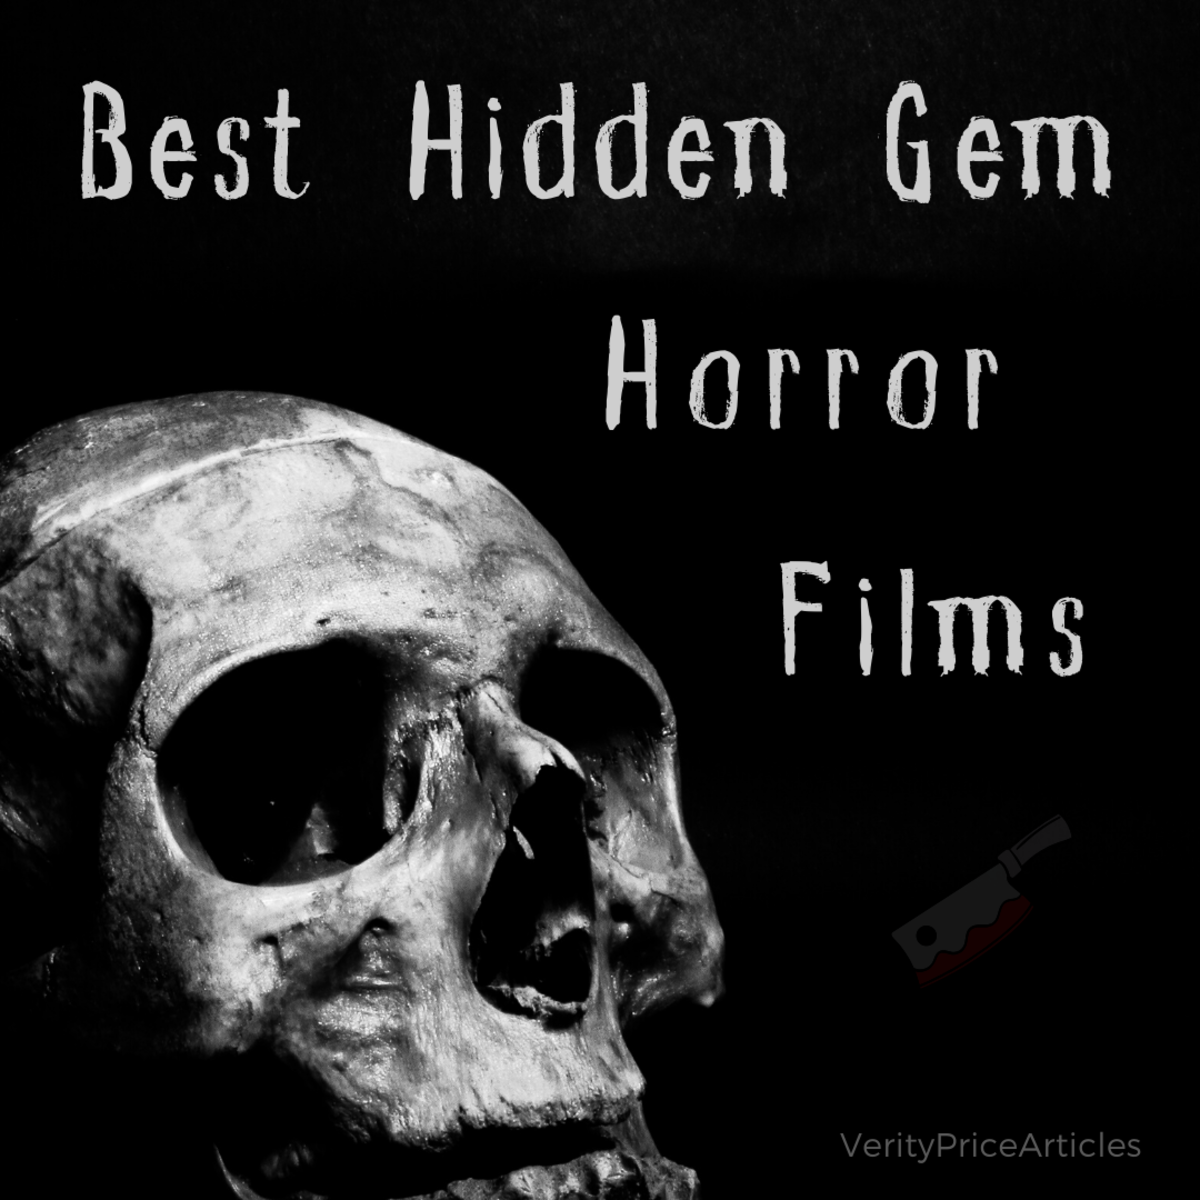 The best hidden gem horror films